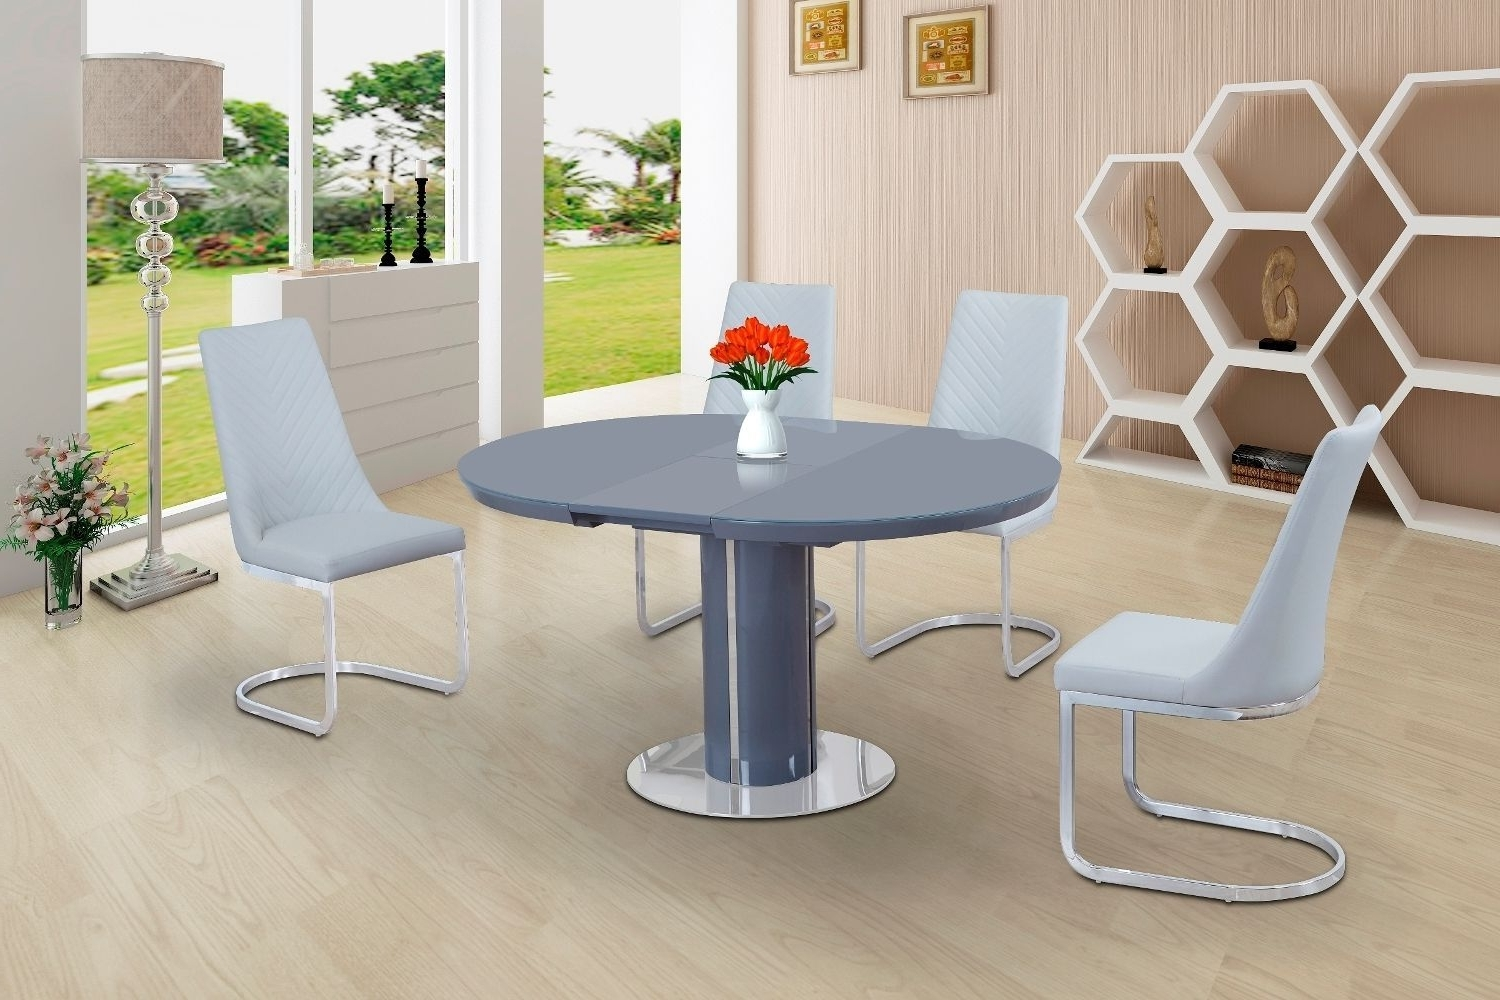 Eclipse Round Oval Gloss & Glass Extending 110 To 145 Cm Dining in Popular Gloss Dining Set